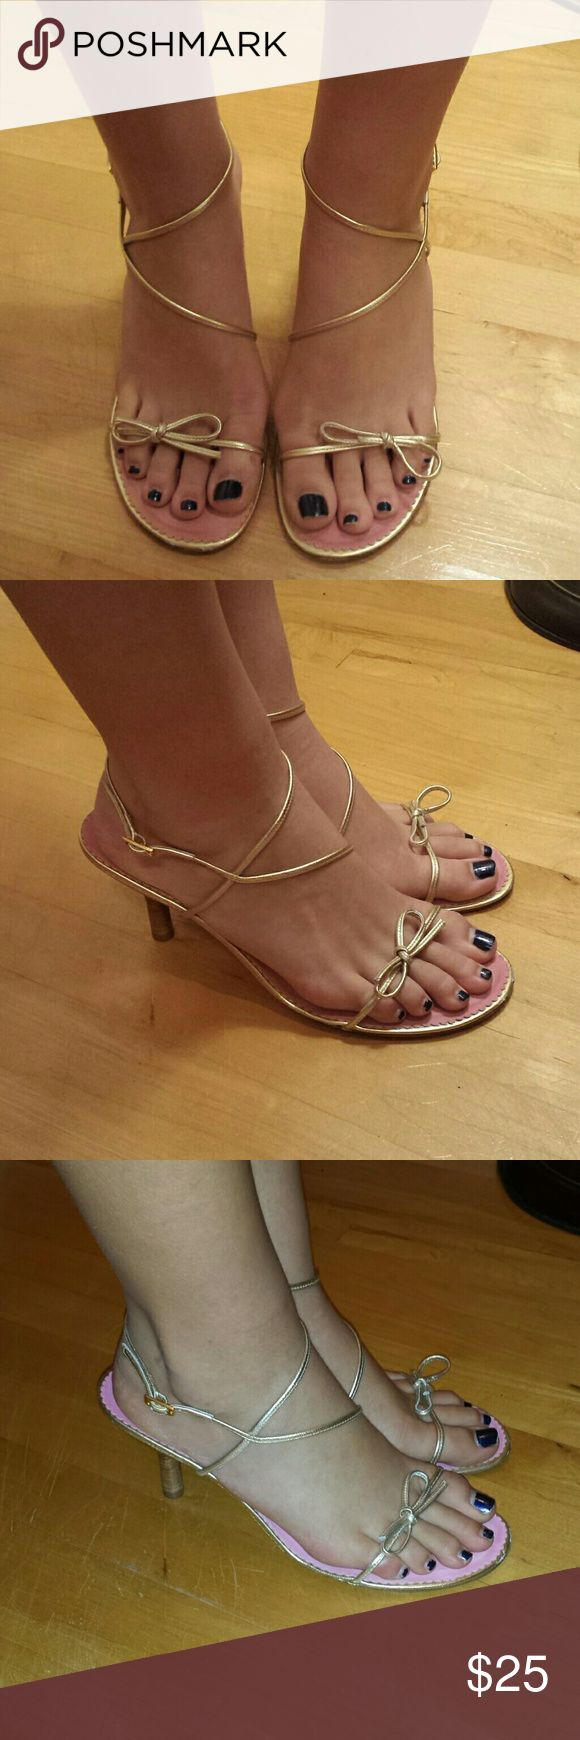 Lilly pulitzer gold strap heels size 10 Cute lilly pulitzer gold strap heels. Excellent used condition Lilly Pulitzer Shoes Heels